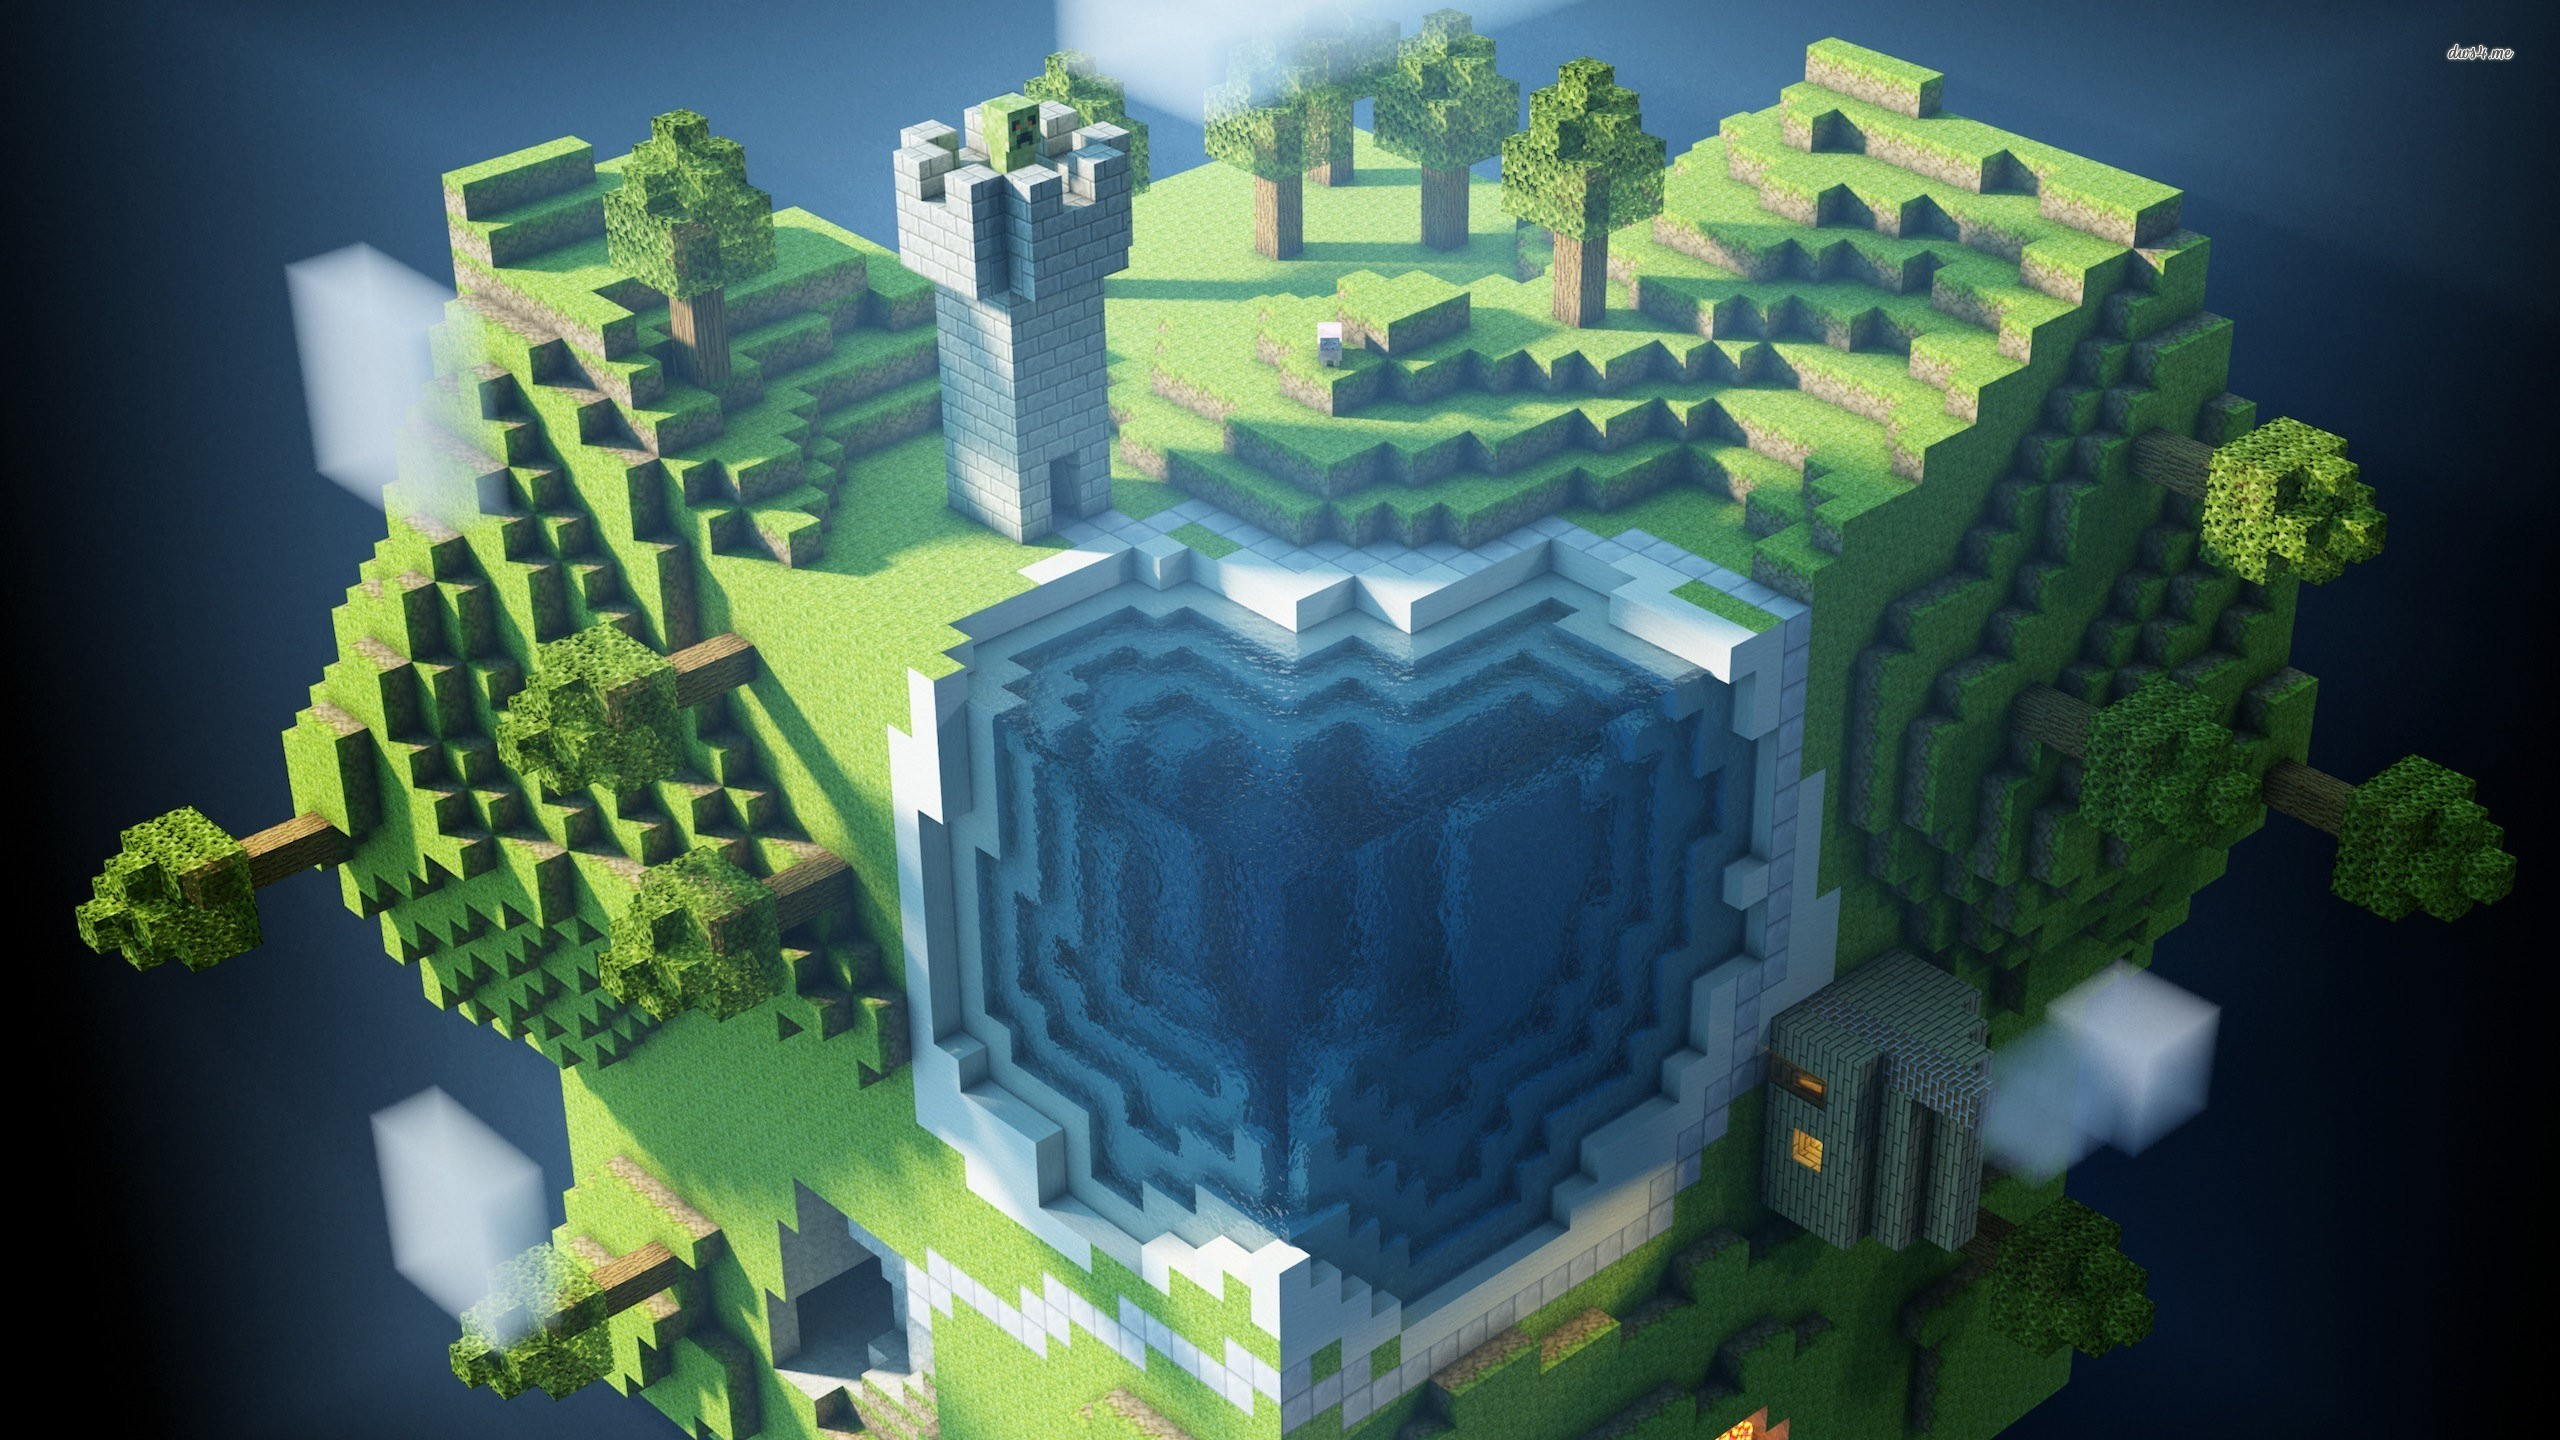 Free Download Minecraft Wallpaper Game Wallpapers 14942